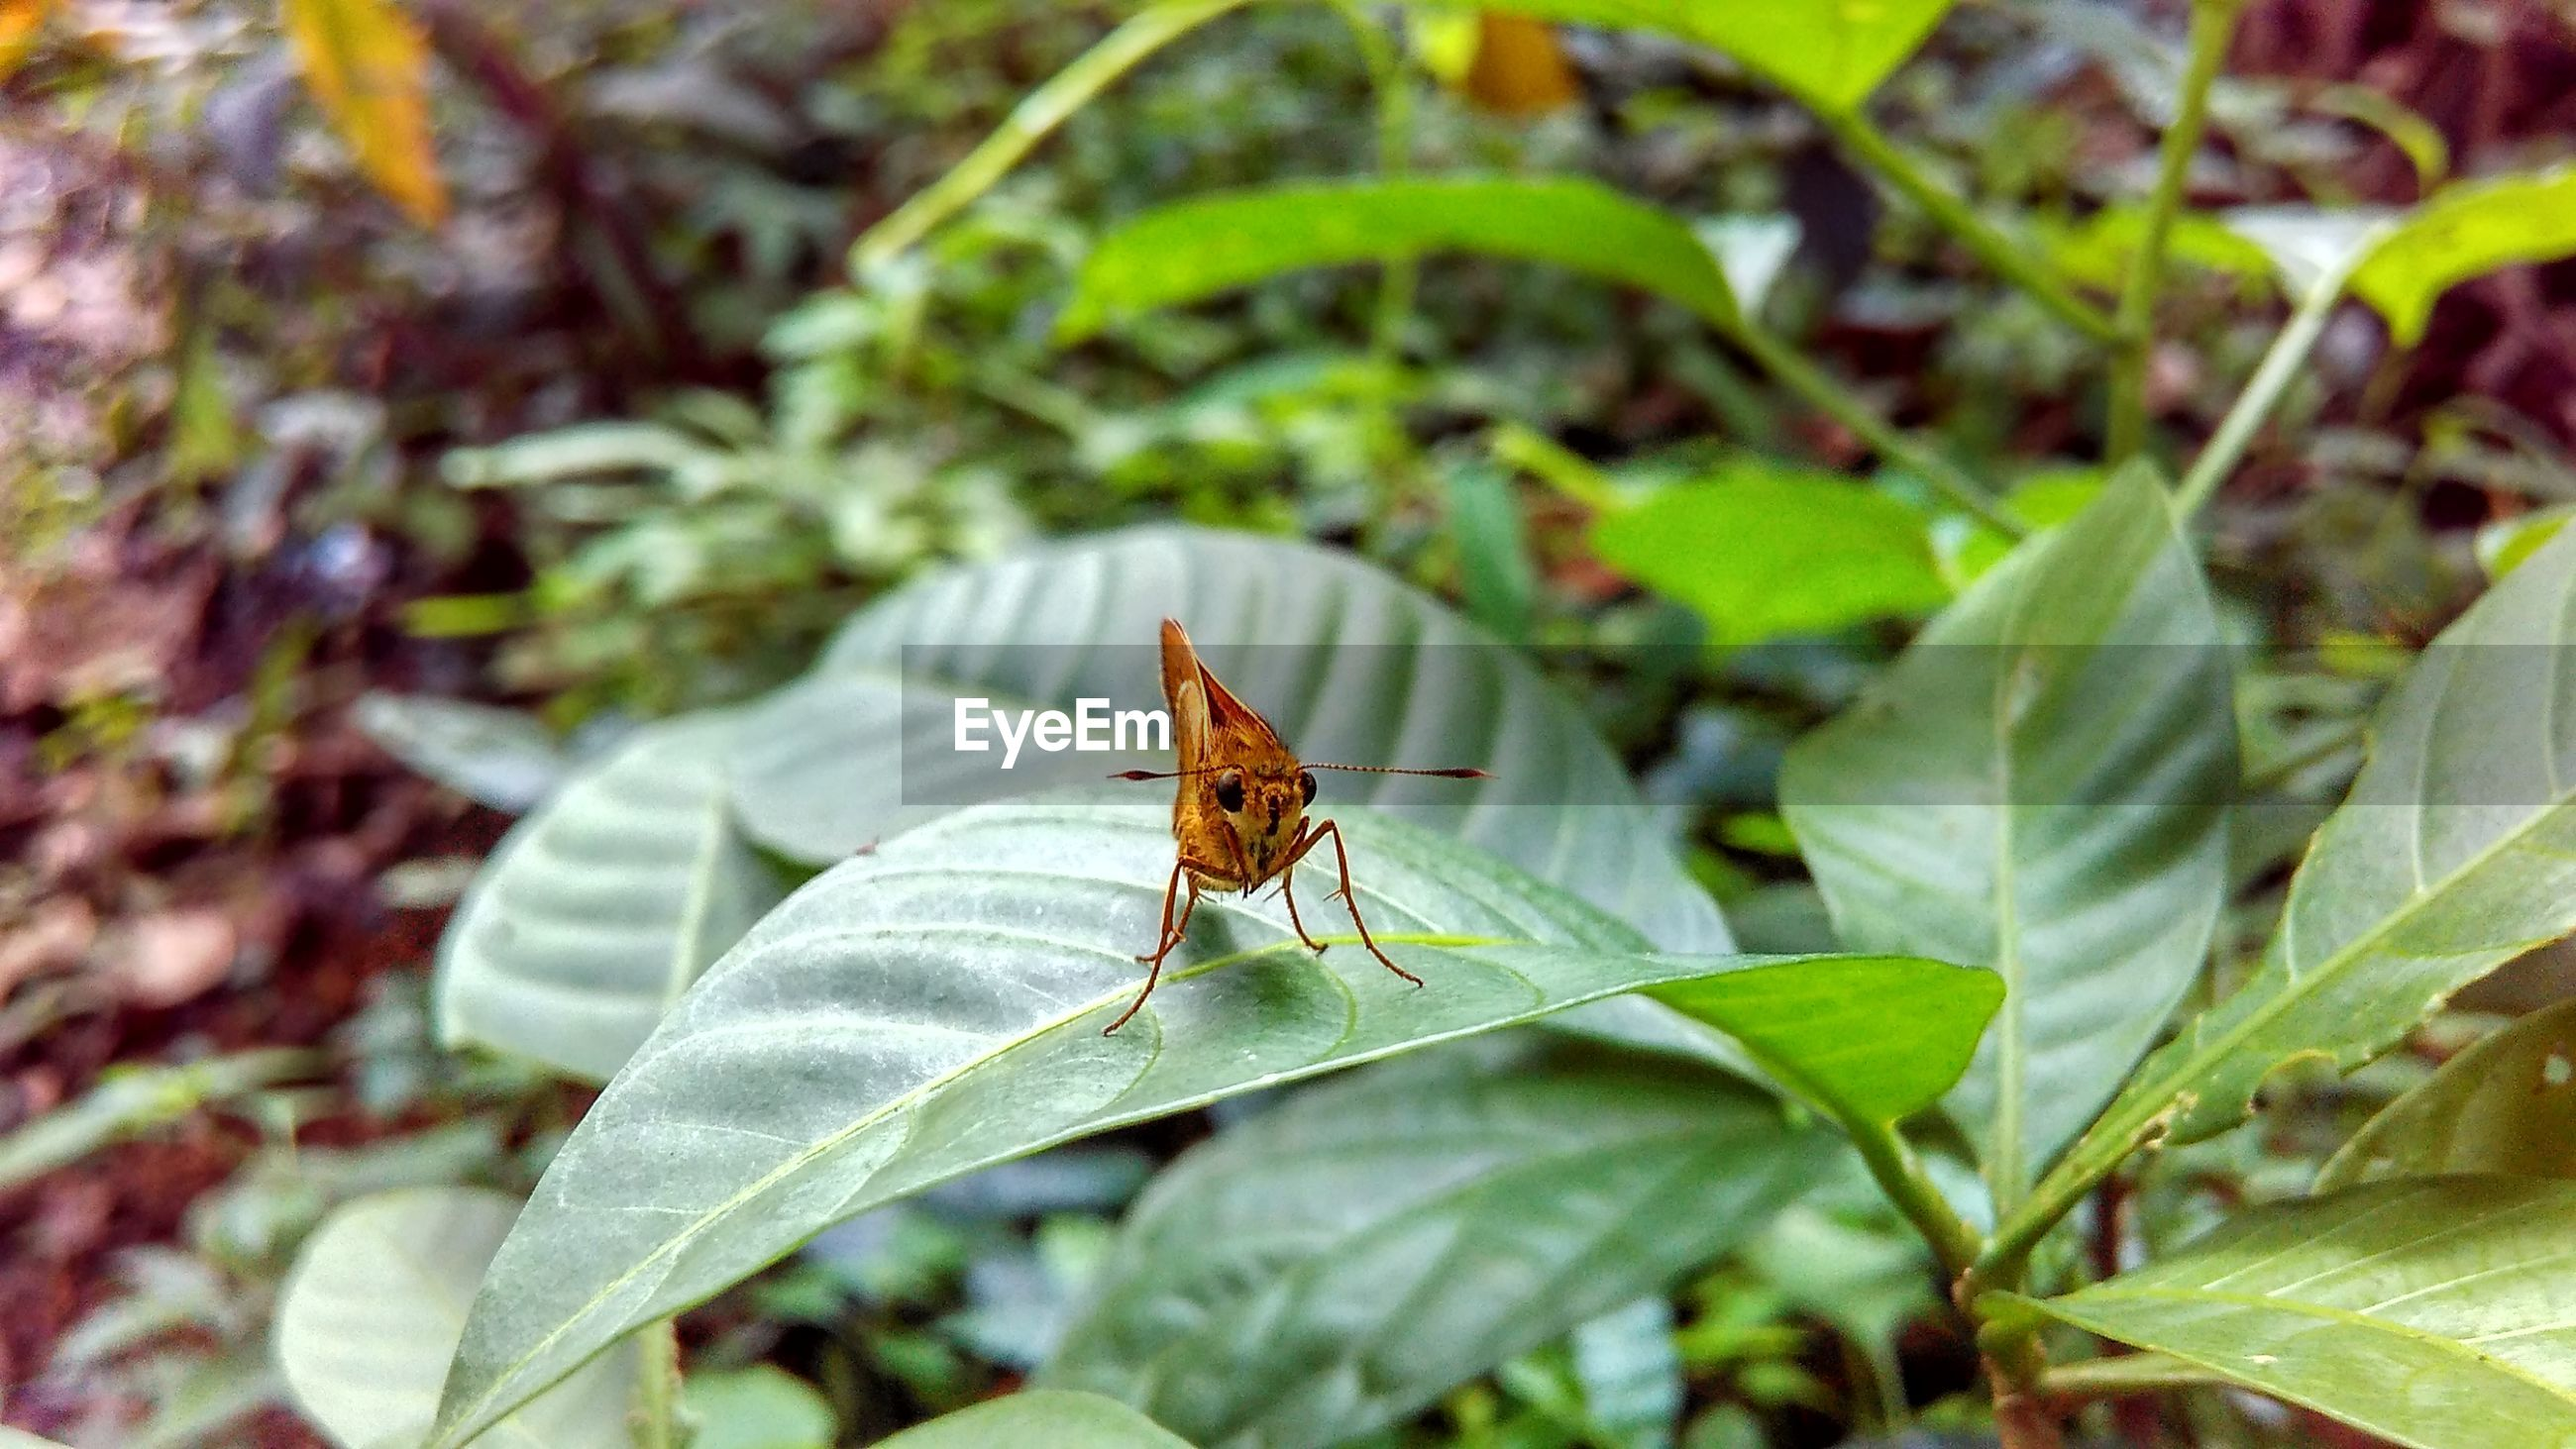 animal themes, wildlife, insect, leaf, green color, focus on foreground, close-up, plant, nature, selective focus, outdoors, day, beauty in nature, no people, growth